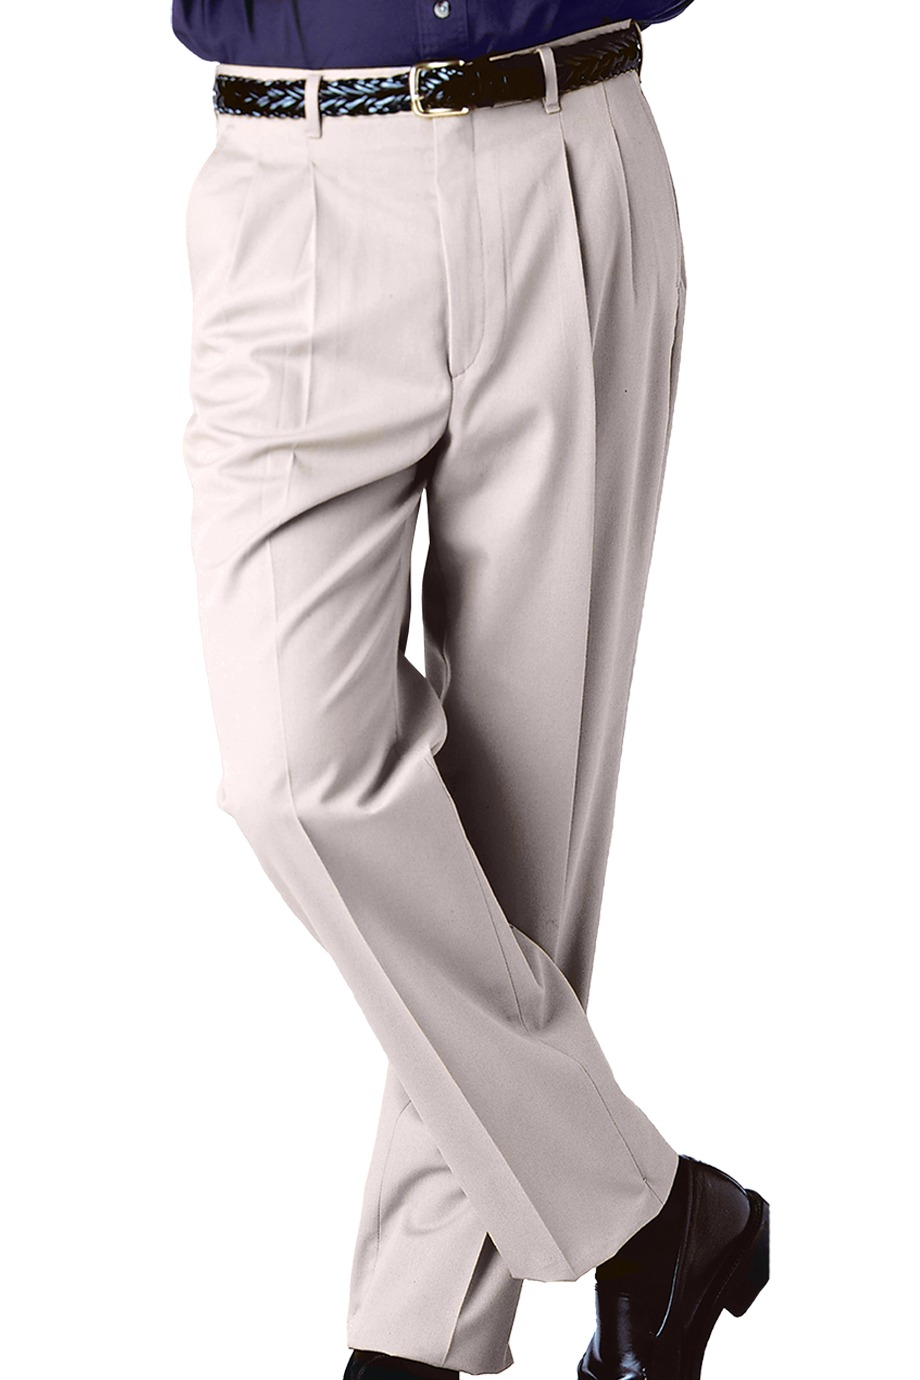 Edwards Garment 2610 - Men's Business Casual Pleated ...